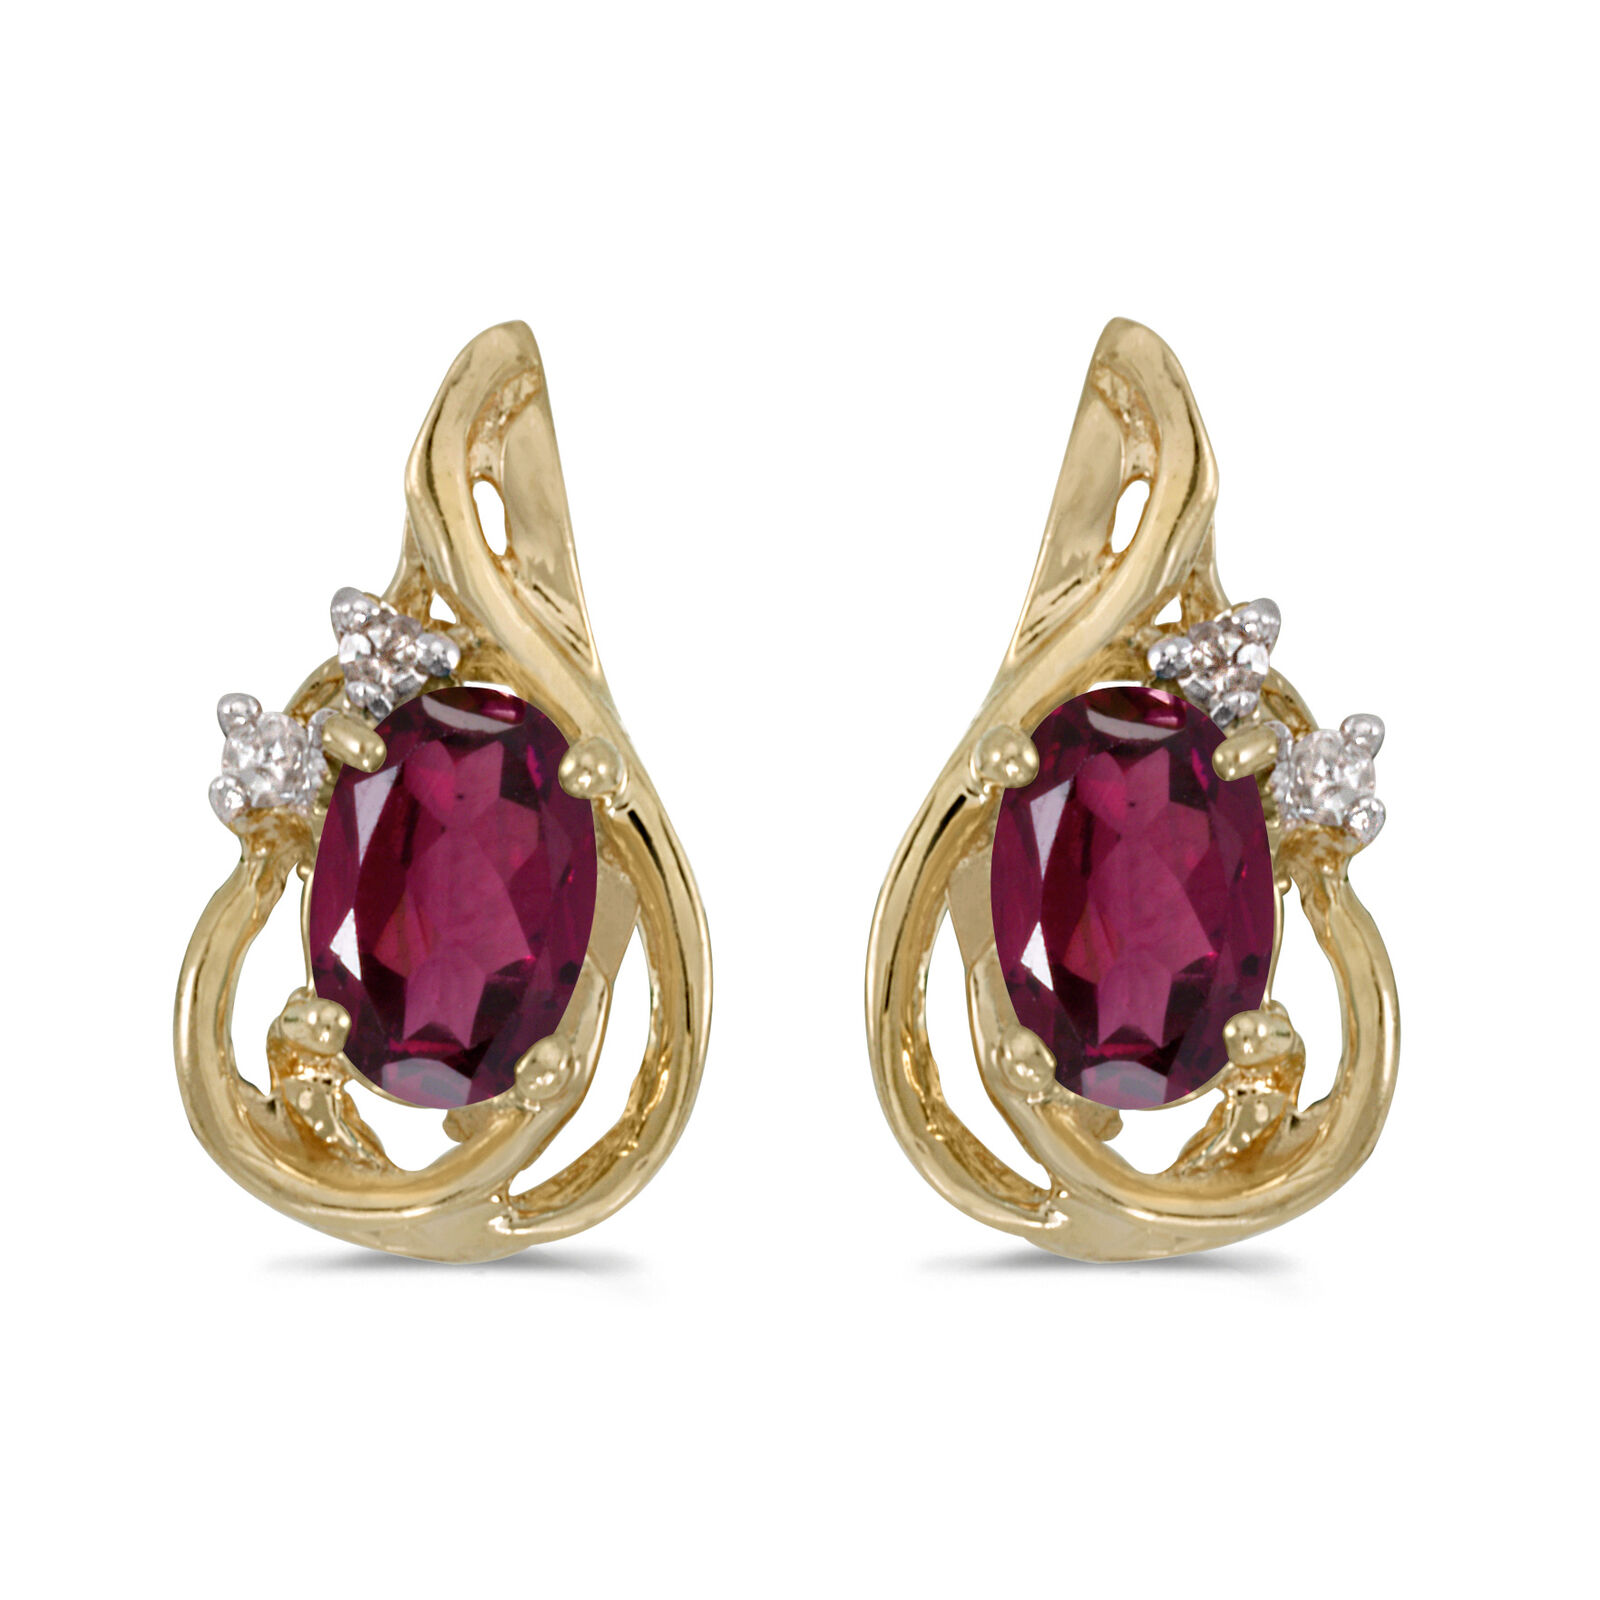 14k Yellow gold Oval Rhodolite Garnet And Diamond Teardrop Earrings